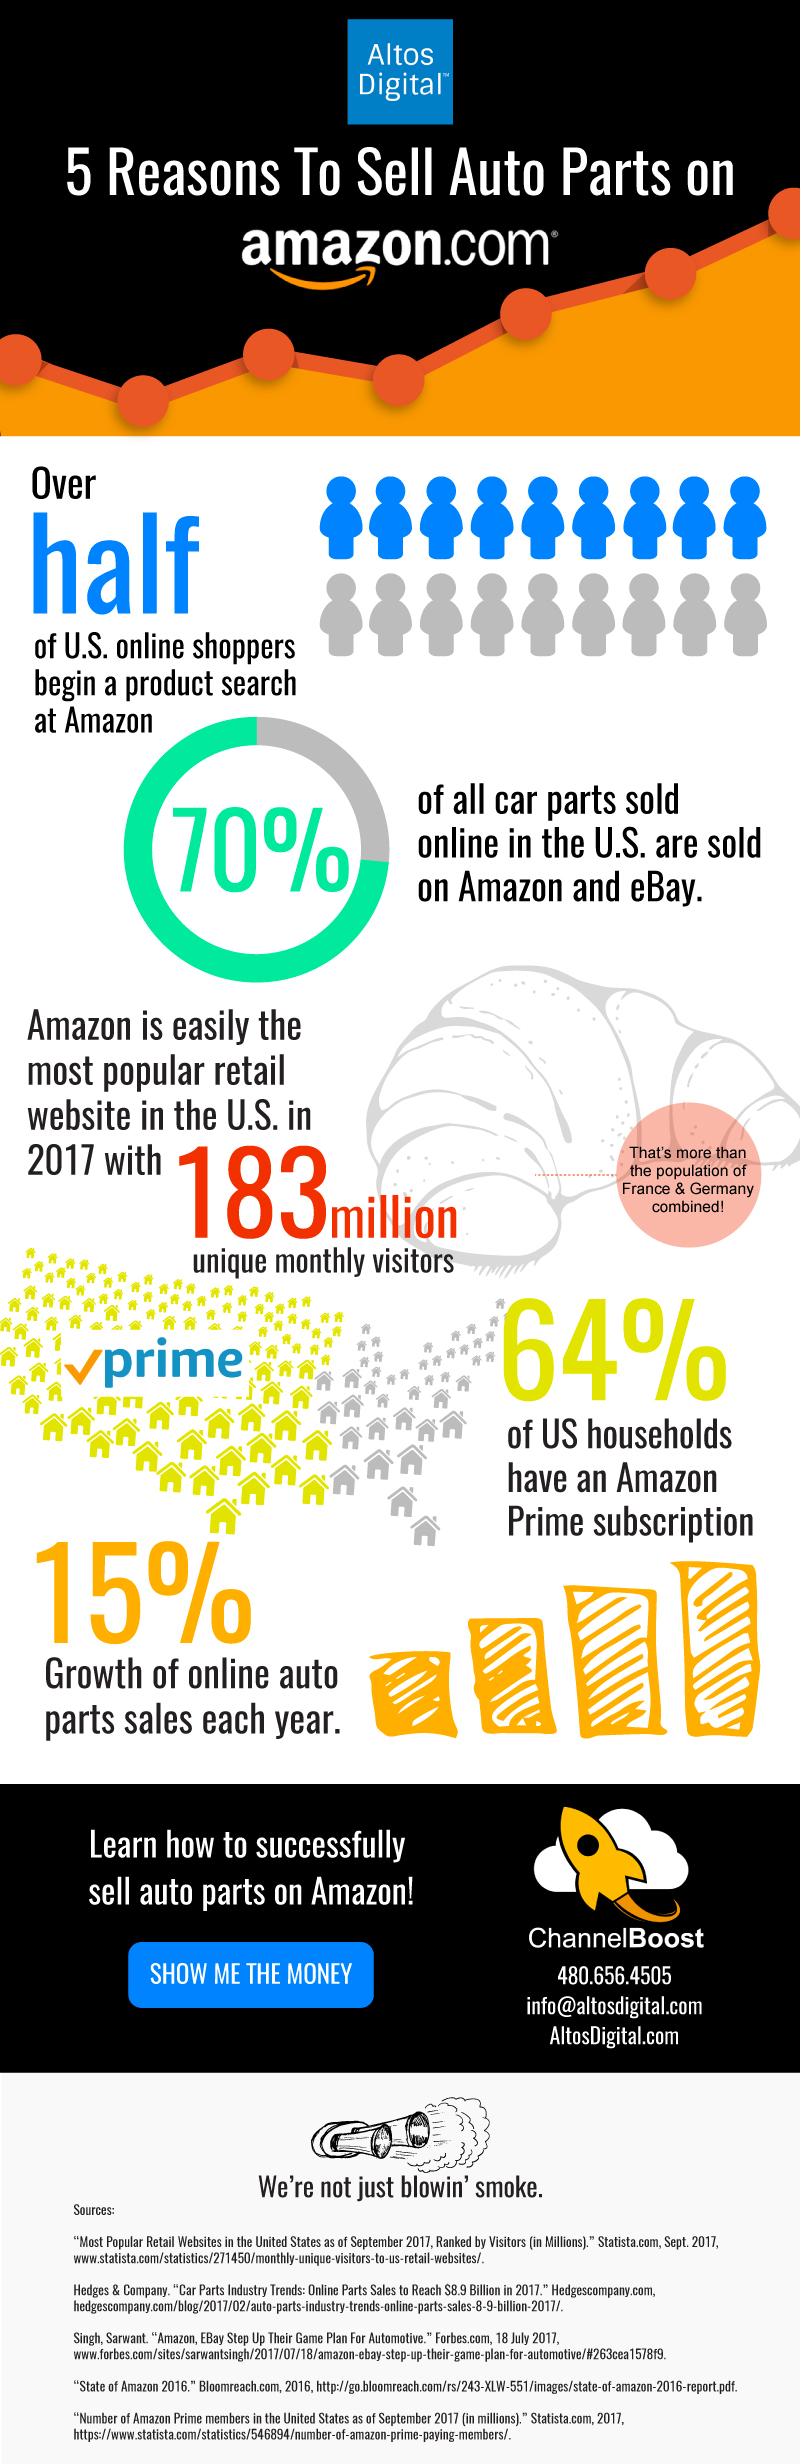 5 Reasons to Sell Auto Parts on Amazon